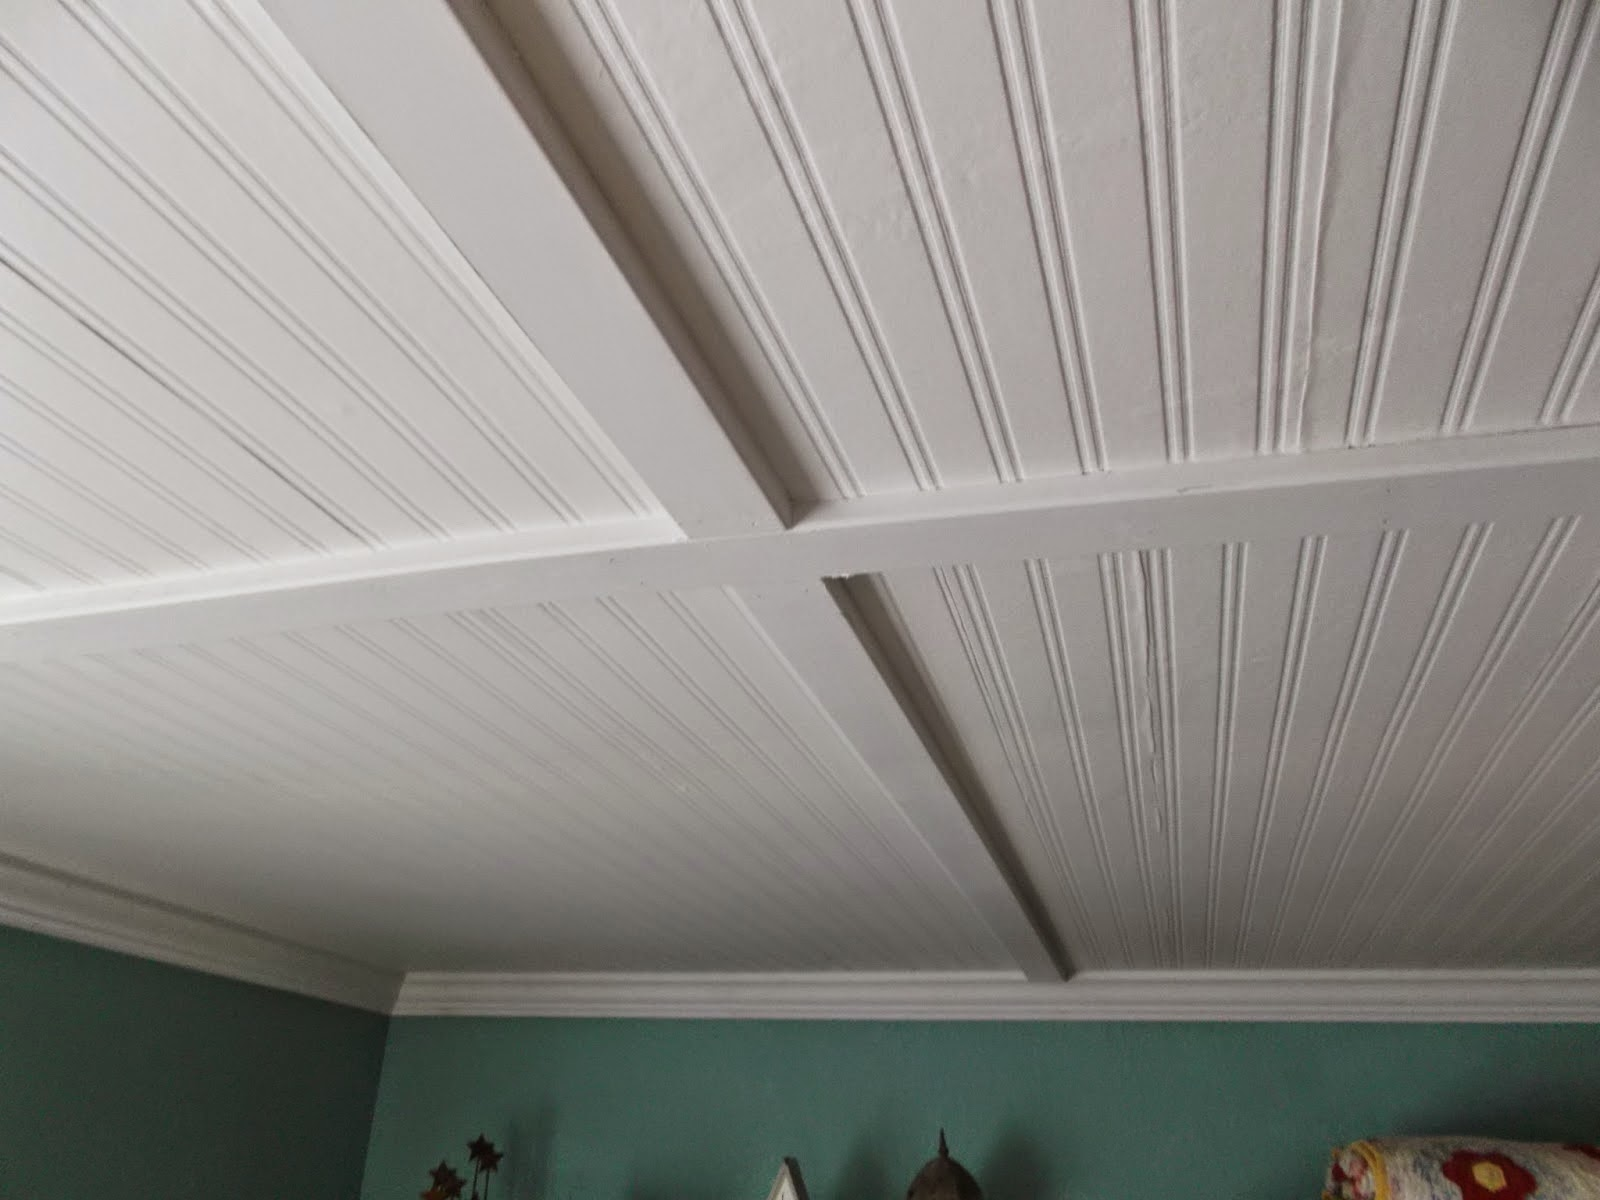 Coffered ceiling tiles lowes energywarden coffered ceiling tiles lowes www allaboutyouth net dailygadgetfo Images